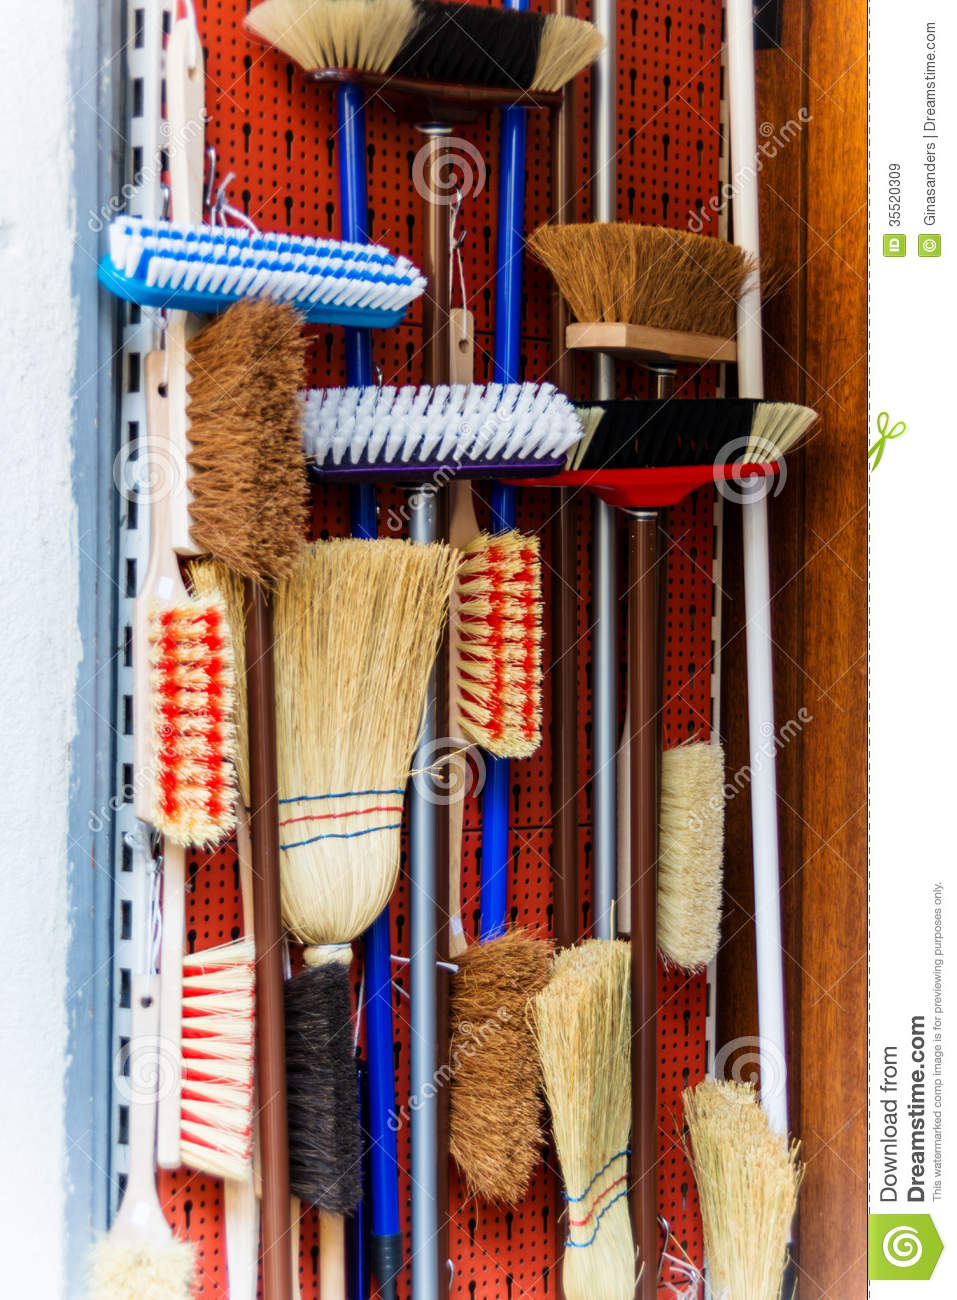 Broom Cupboard Royalty Free Stock Images - Image: 35520309